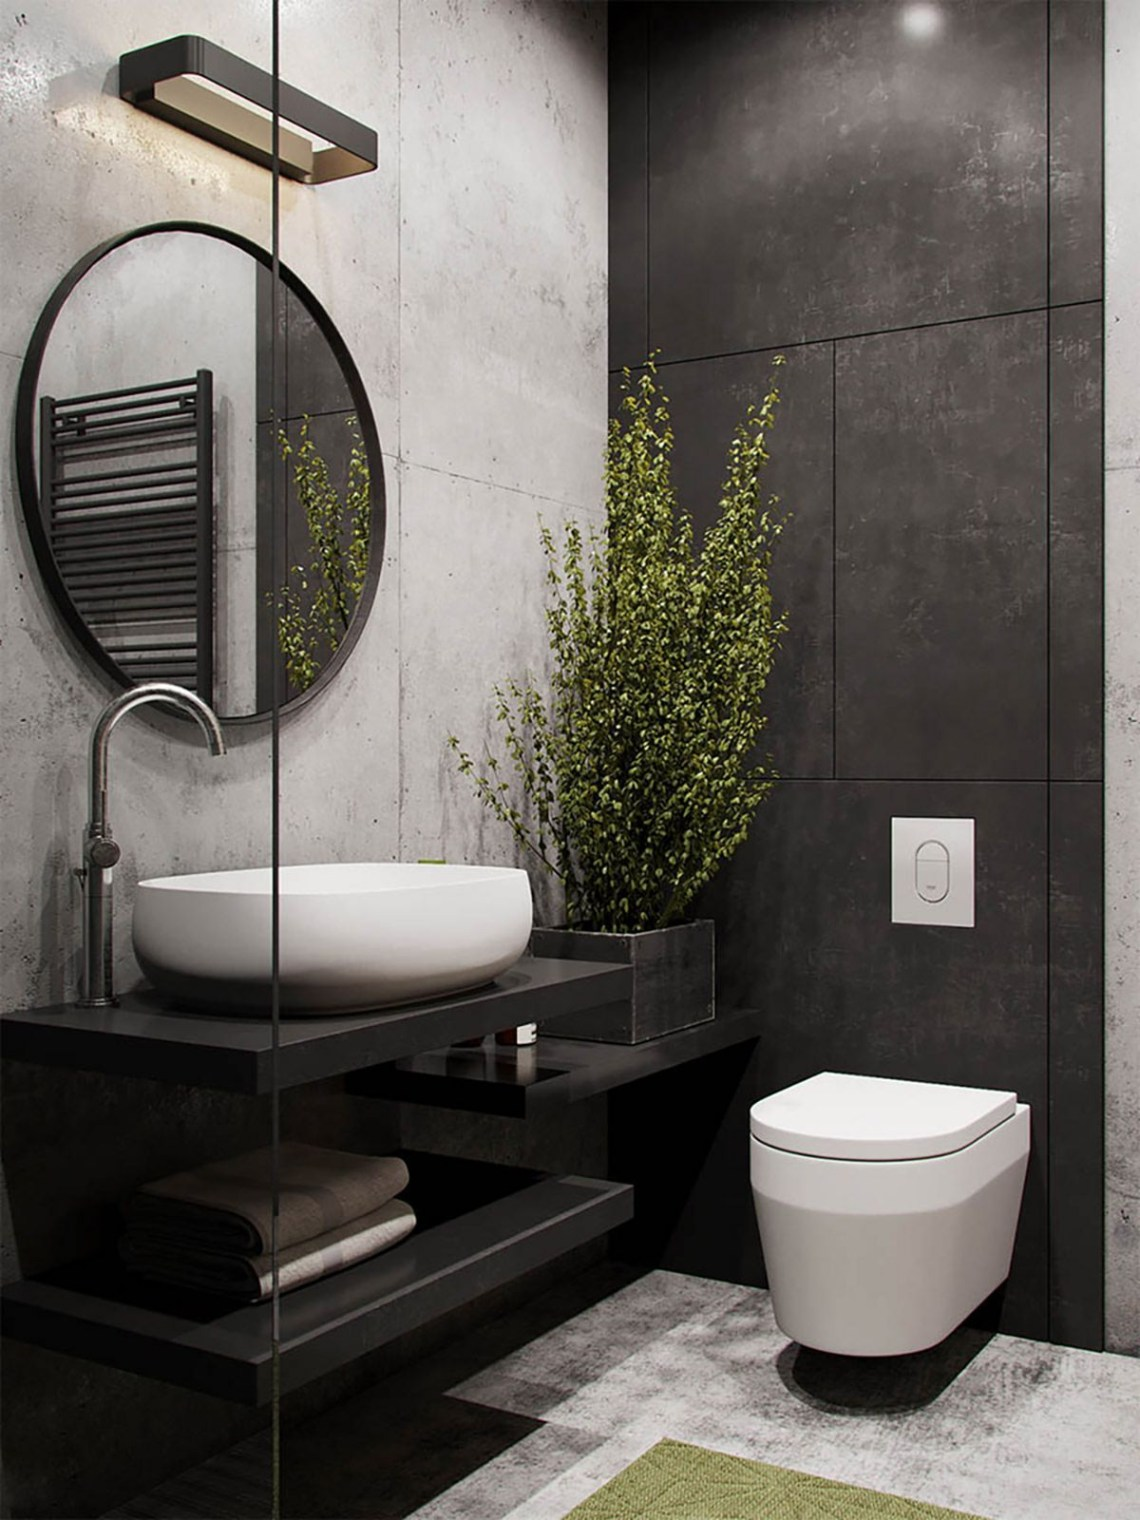 15 Gorgeous Industrial Bathroom Decoration Ideas The Most